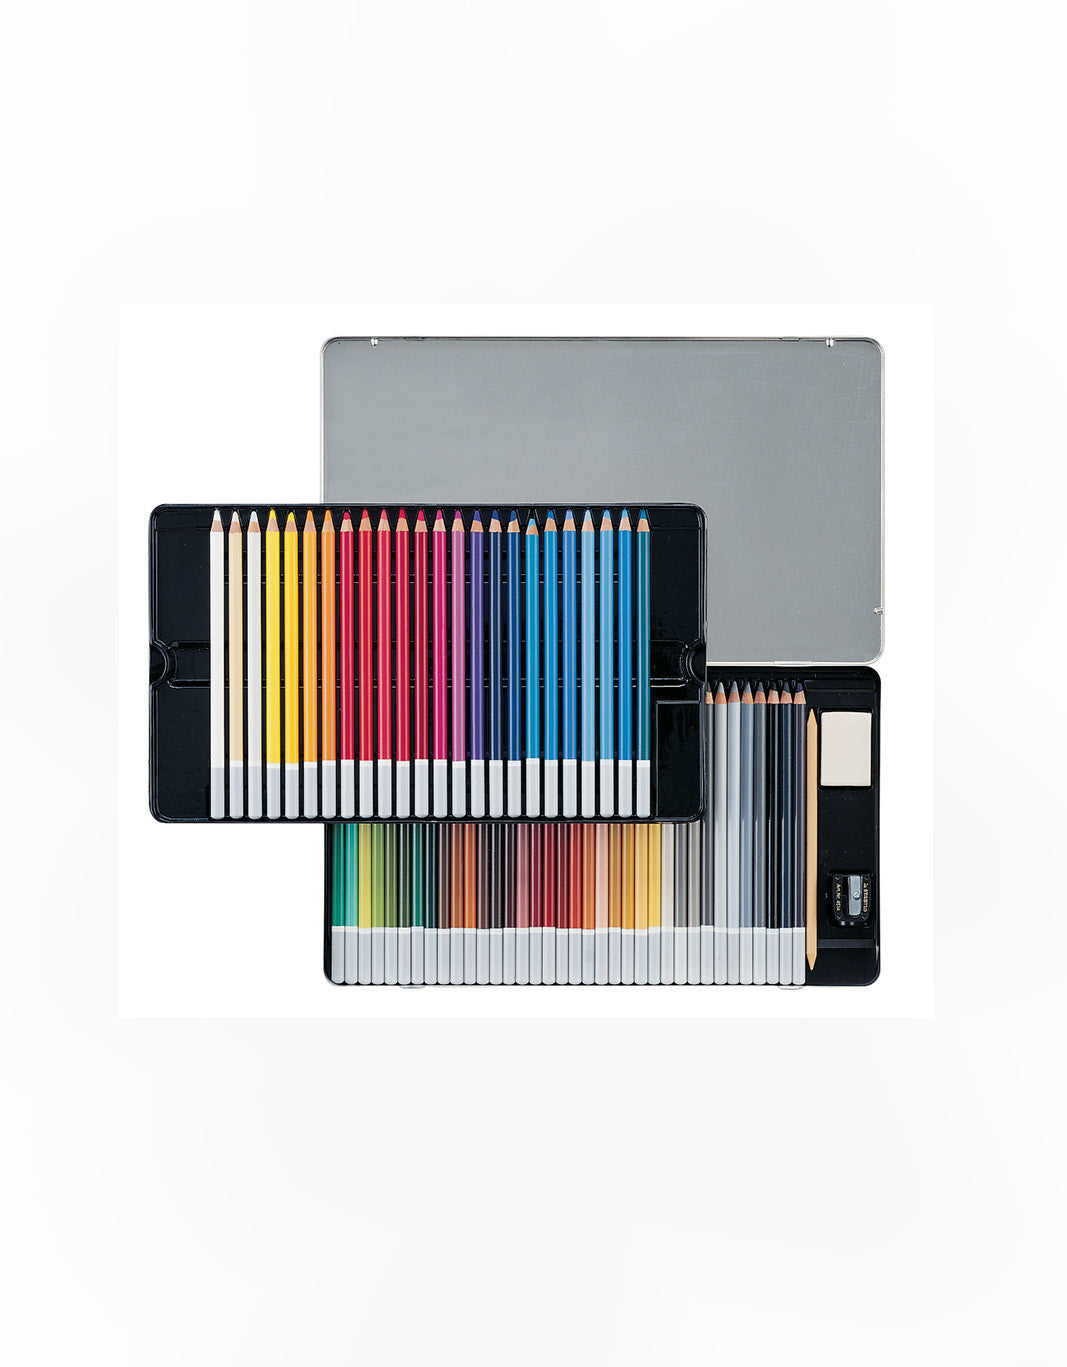 STABILO CarbOthello Chalk-Pastel Coloured Pencils are now available!